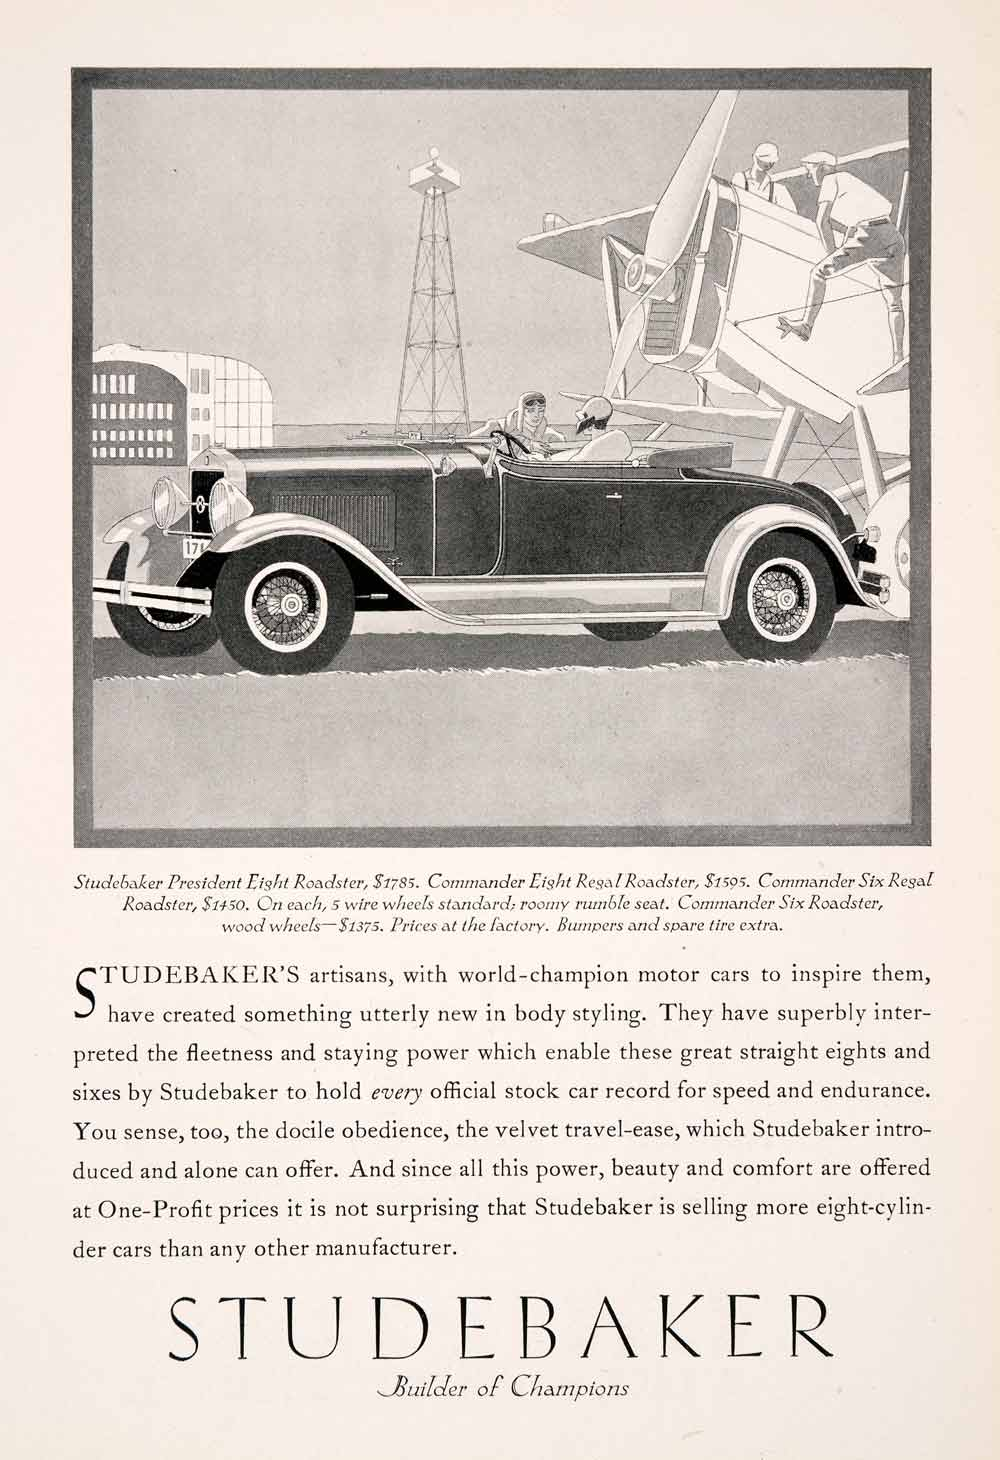 Vintage Advertising Art Tagged Studebaker Period Paper Wiring Diagram For 1952 Champion And Commander 1929 Ad Antique President Eight Roadster Convertible Private Ngm3